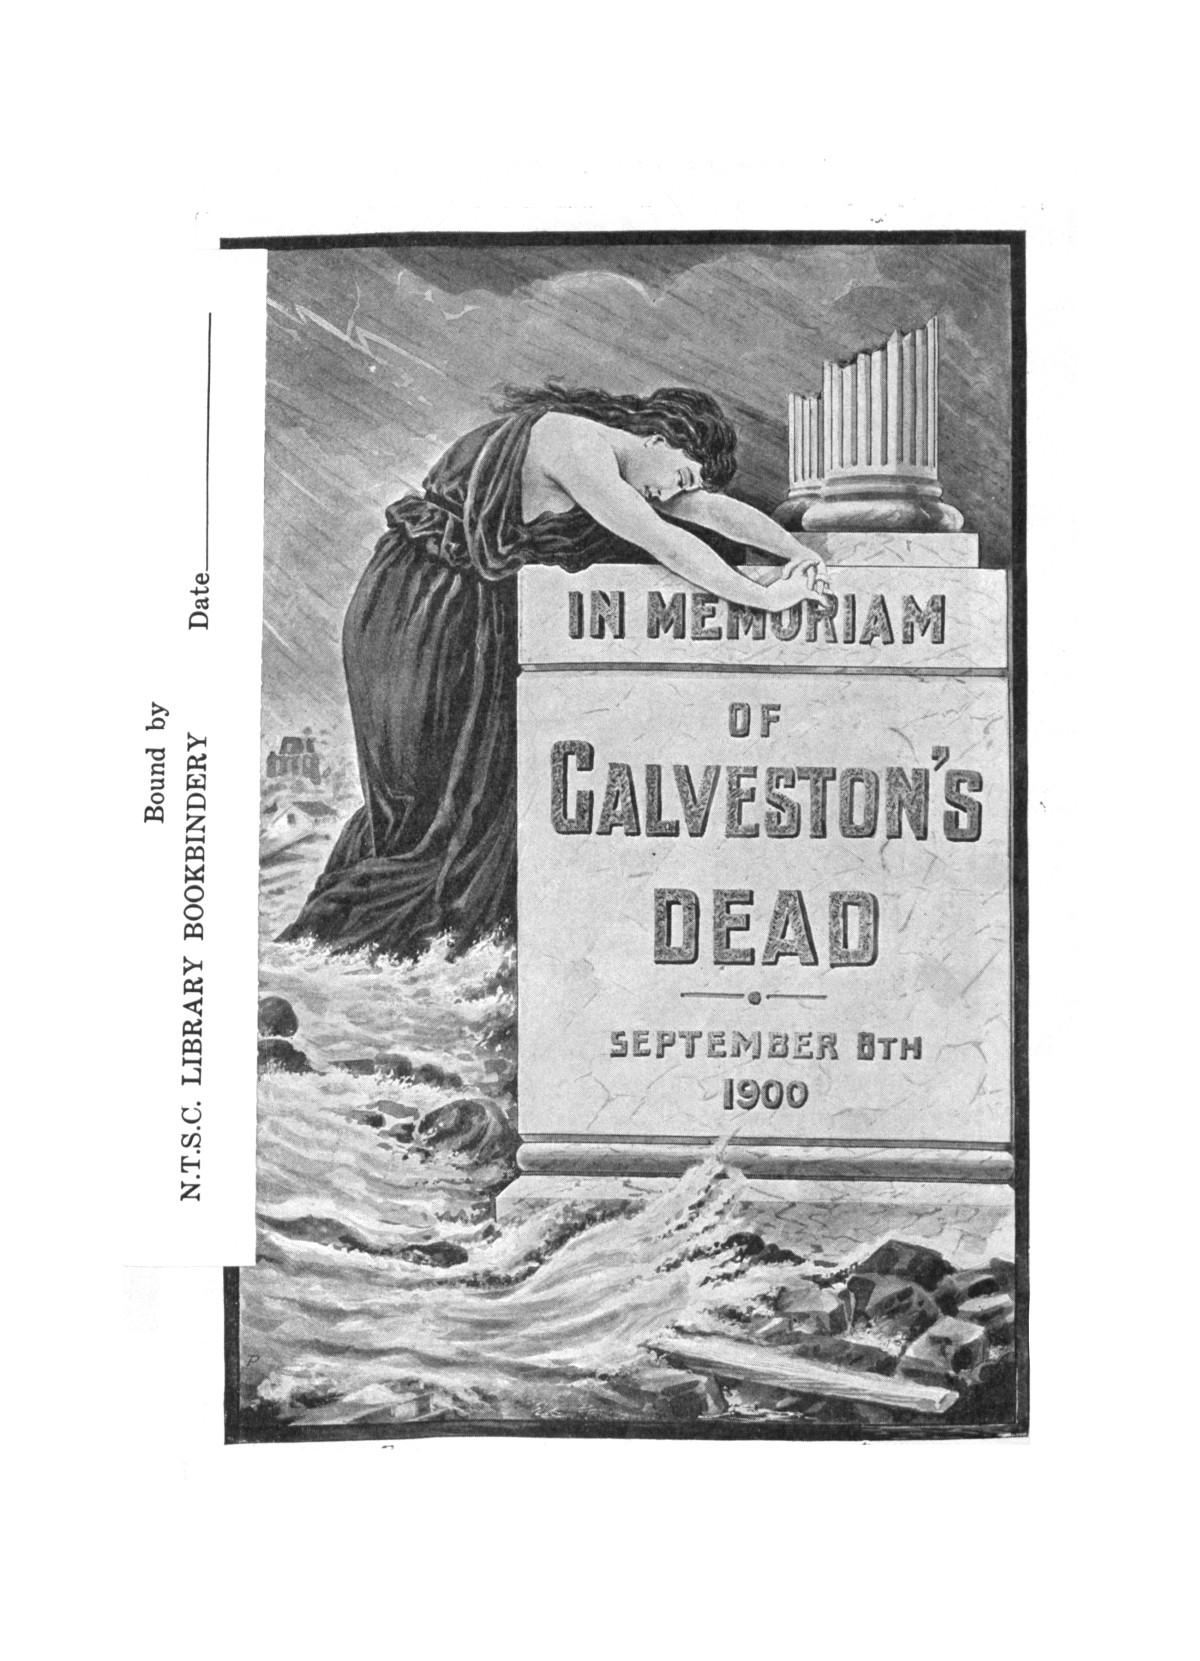 The great Galveston disaster, containing a full and thrilling account of the most appalling calamity of modern times including vivid descriptions of the hurricane                                                                                                      Front Inside